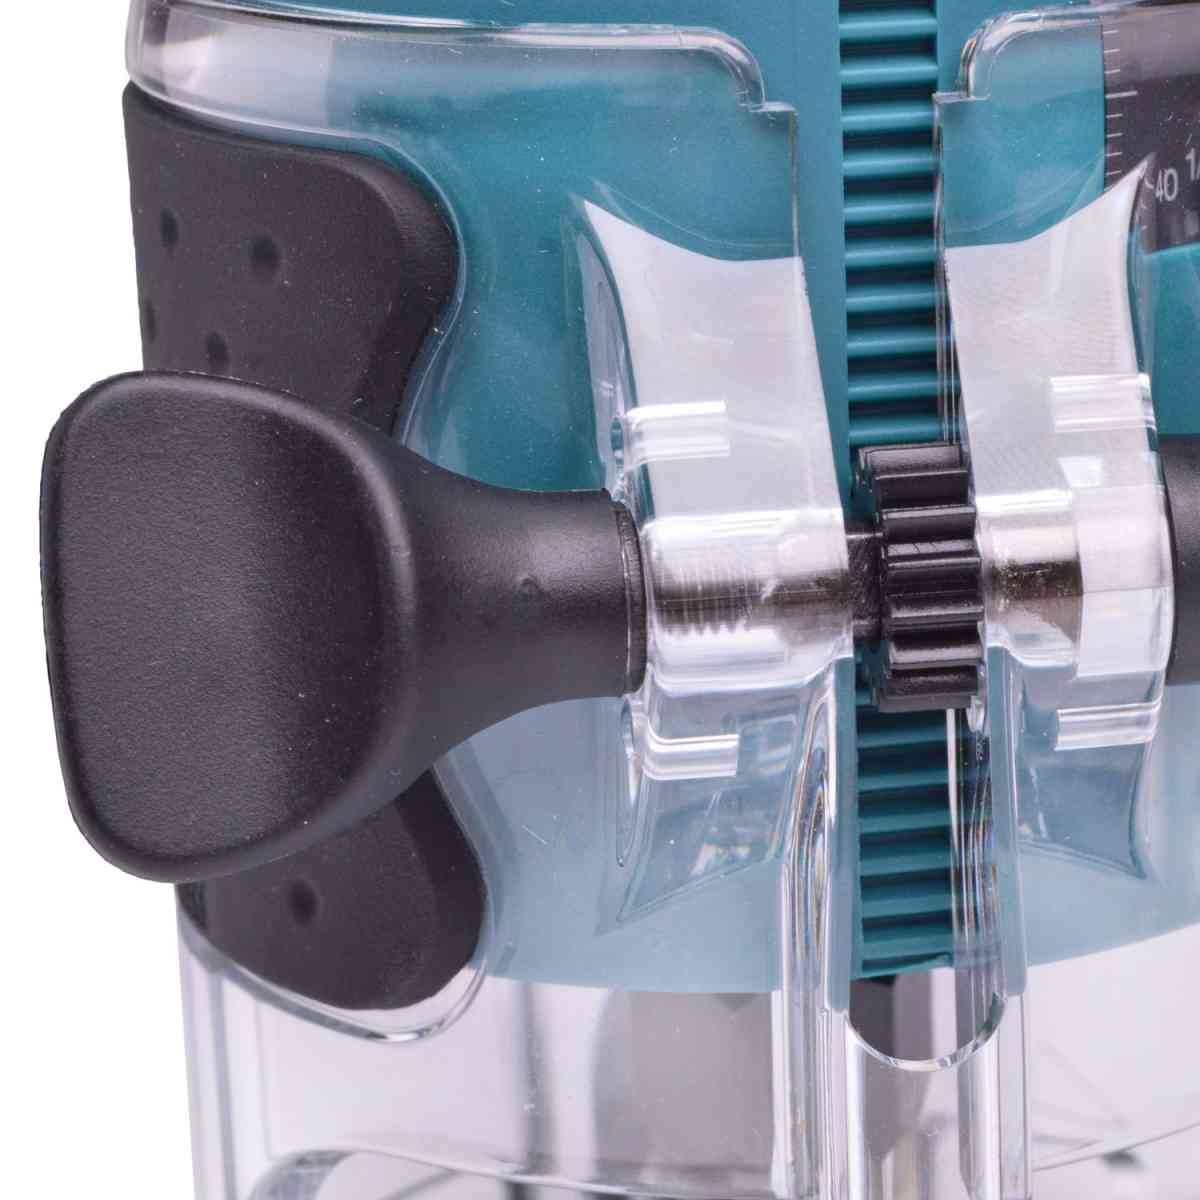 Tupia Manual 530W Com Base Articulada 3709 Makita - 127V